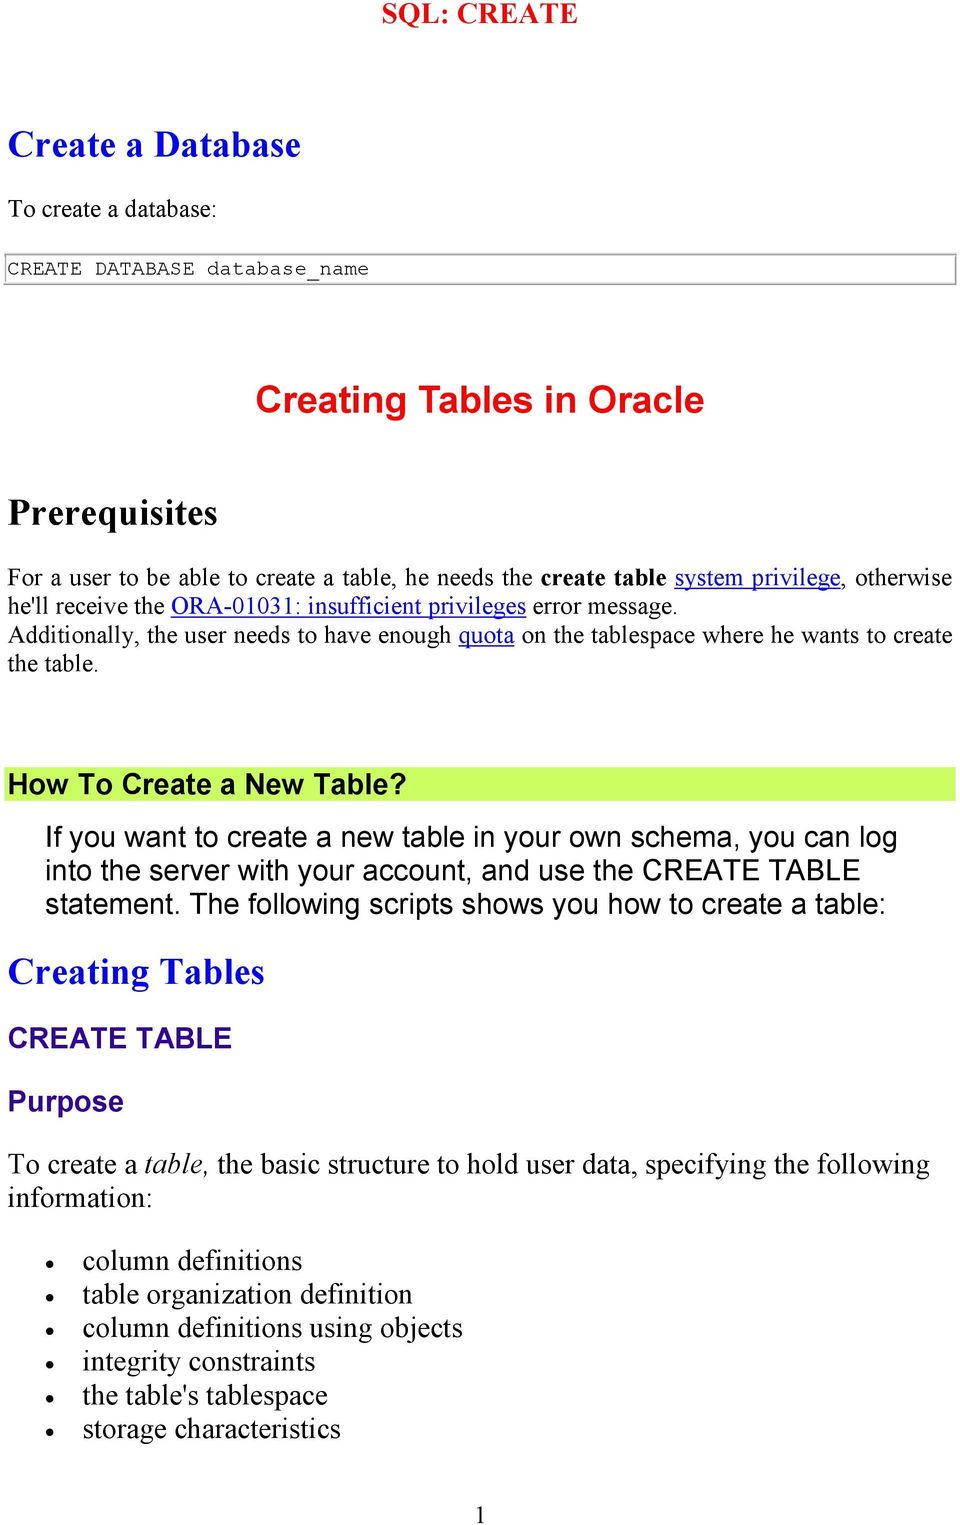 How To Create a New Table? If you want to create a new table in your own schema, you can log into the server with your account, and use the CREATE TABLE statement.